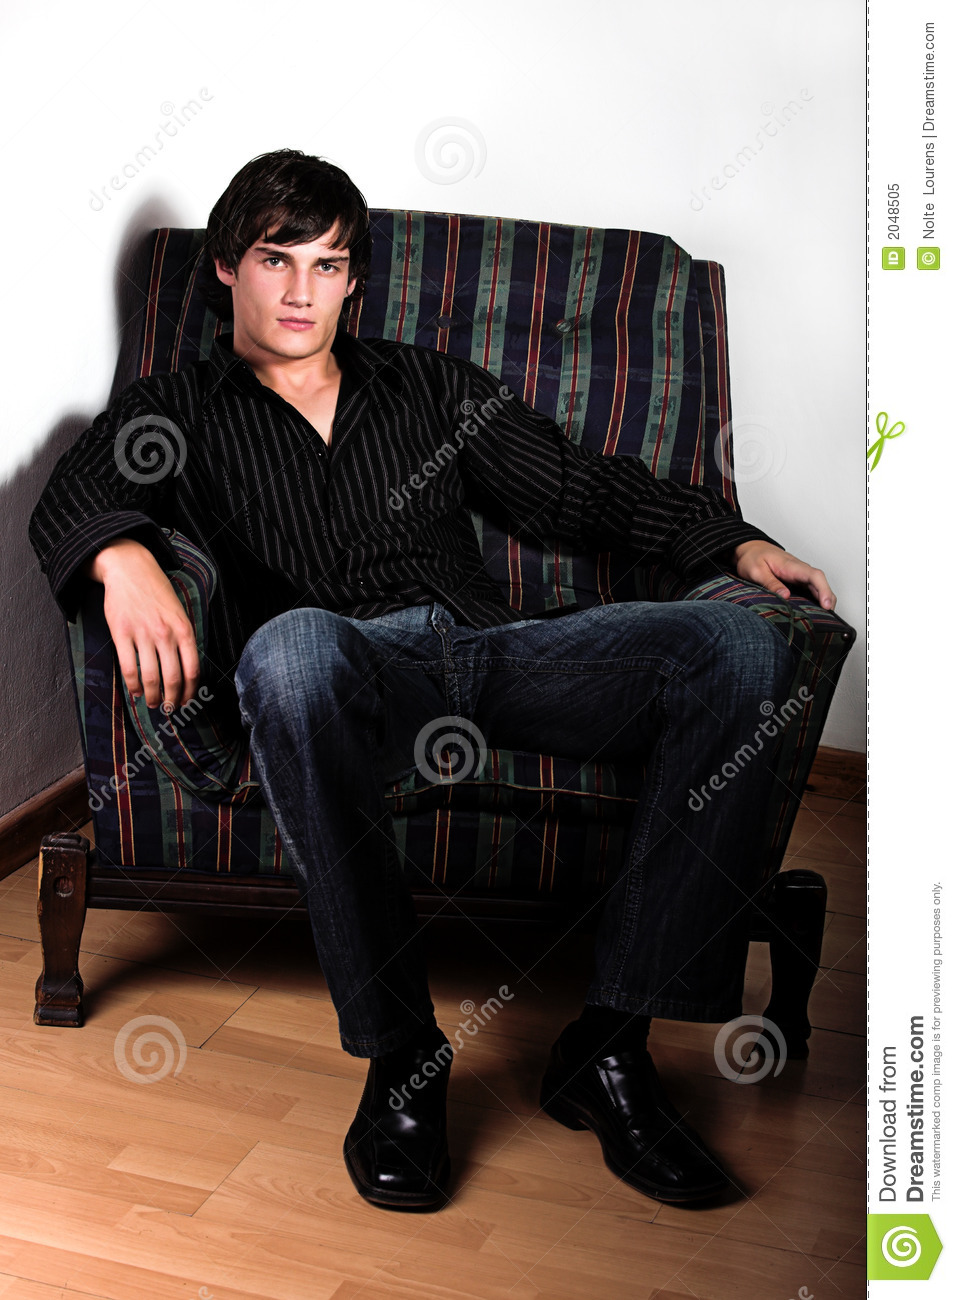 sofa chair for baby girl affordable leather sleeper hunk on royalty free stock photo - image: 2048505